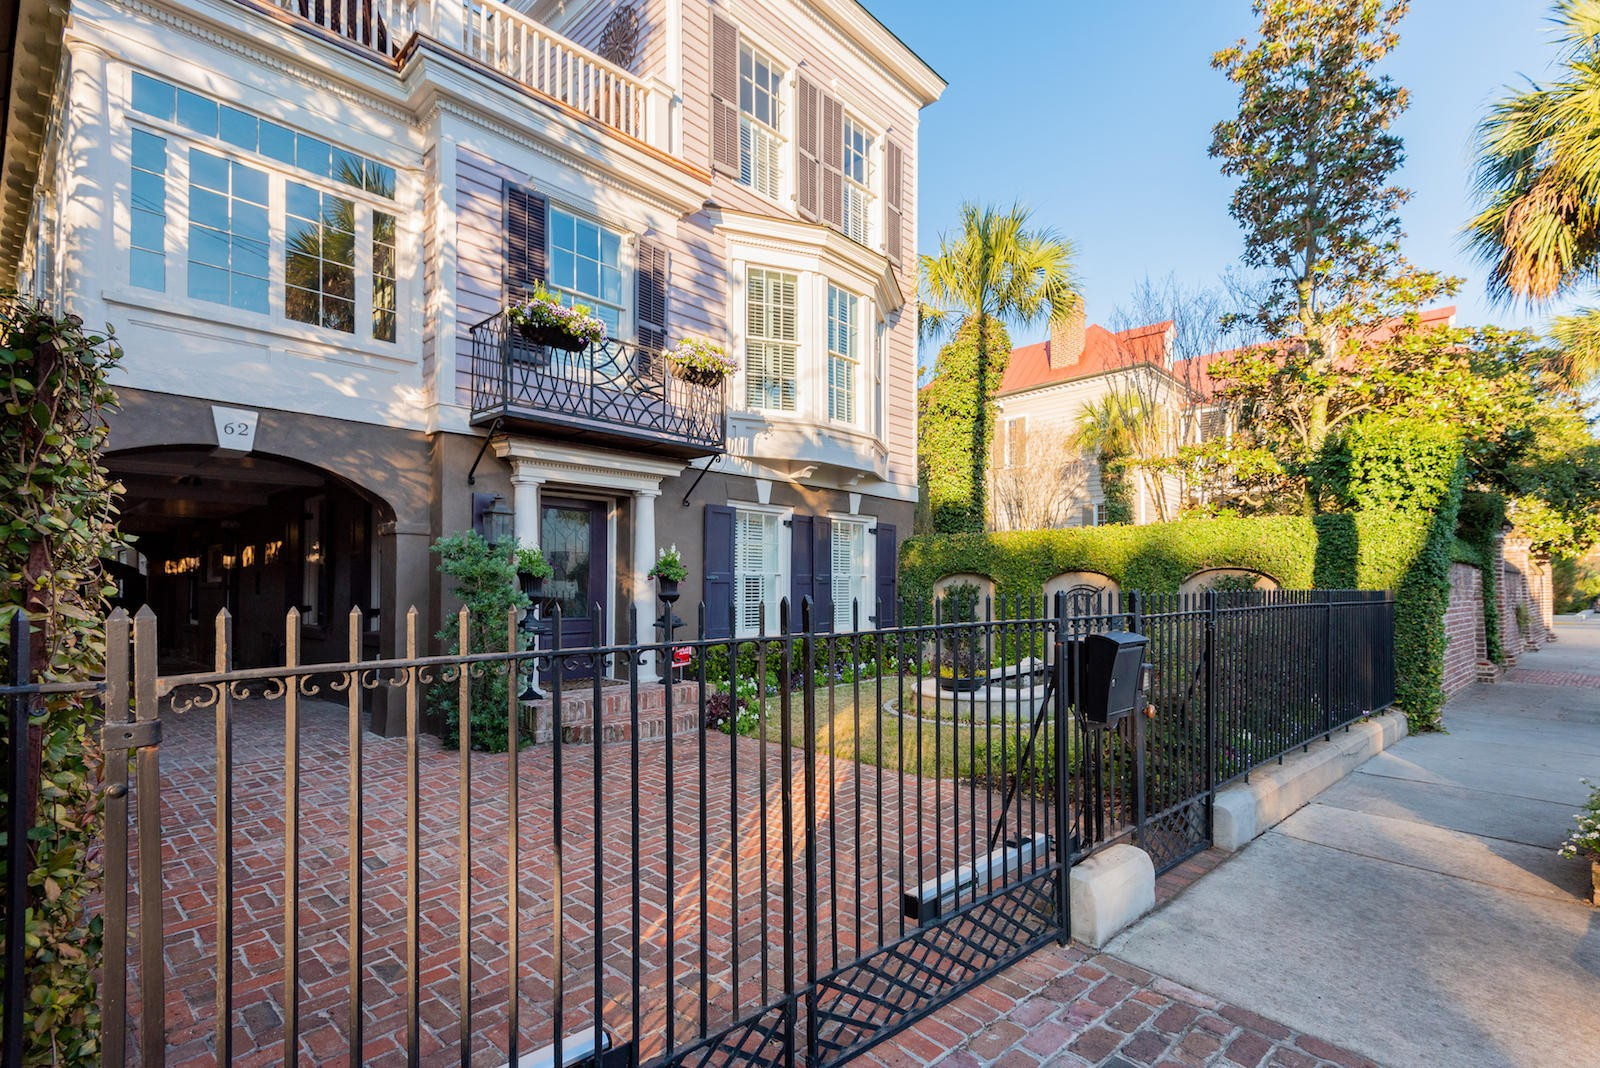 62 south battery street a luxury single family home for sale in charleston, south carolina property id 20002912 christie s international real estate